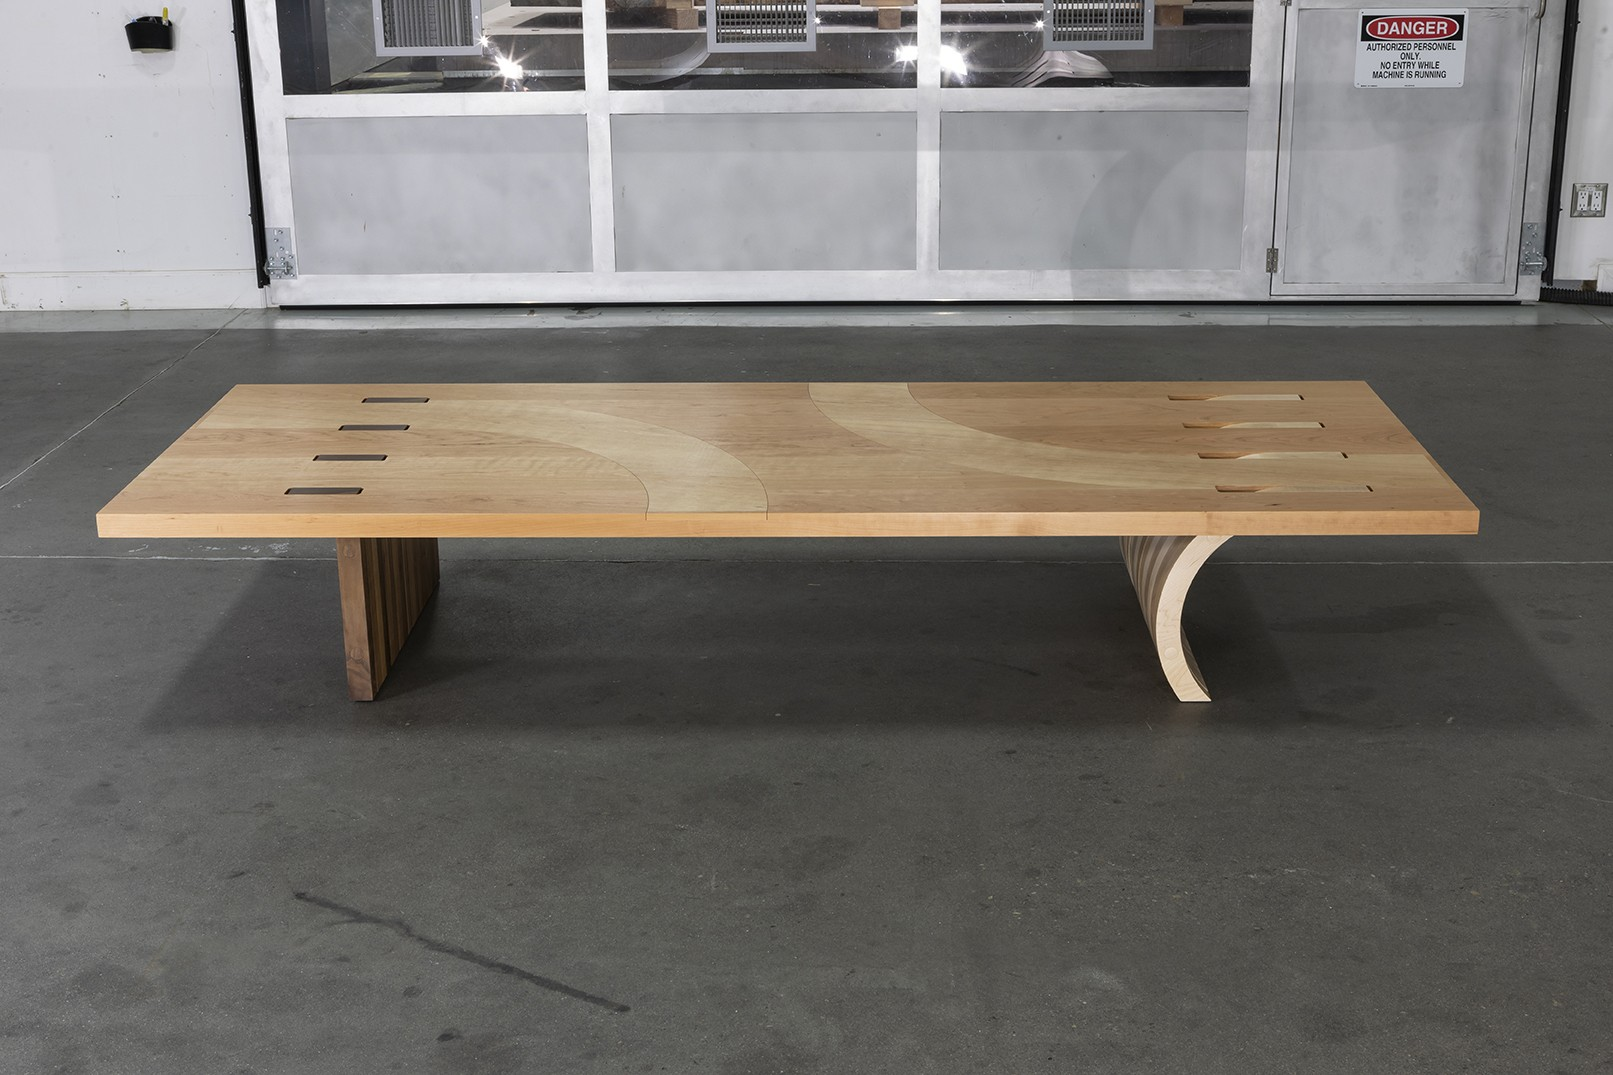 https://stevenholl.sfo2.digitaloceanspaces.com/uploads/projects/project-images/5136.1_Approval_Coffee_Table5_01.jpg